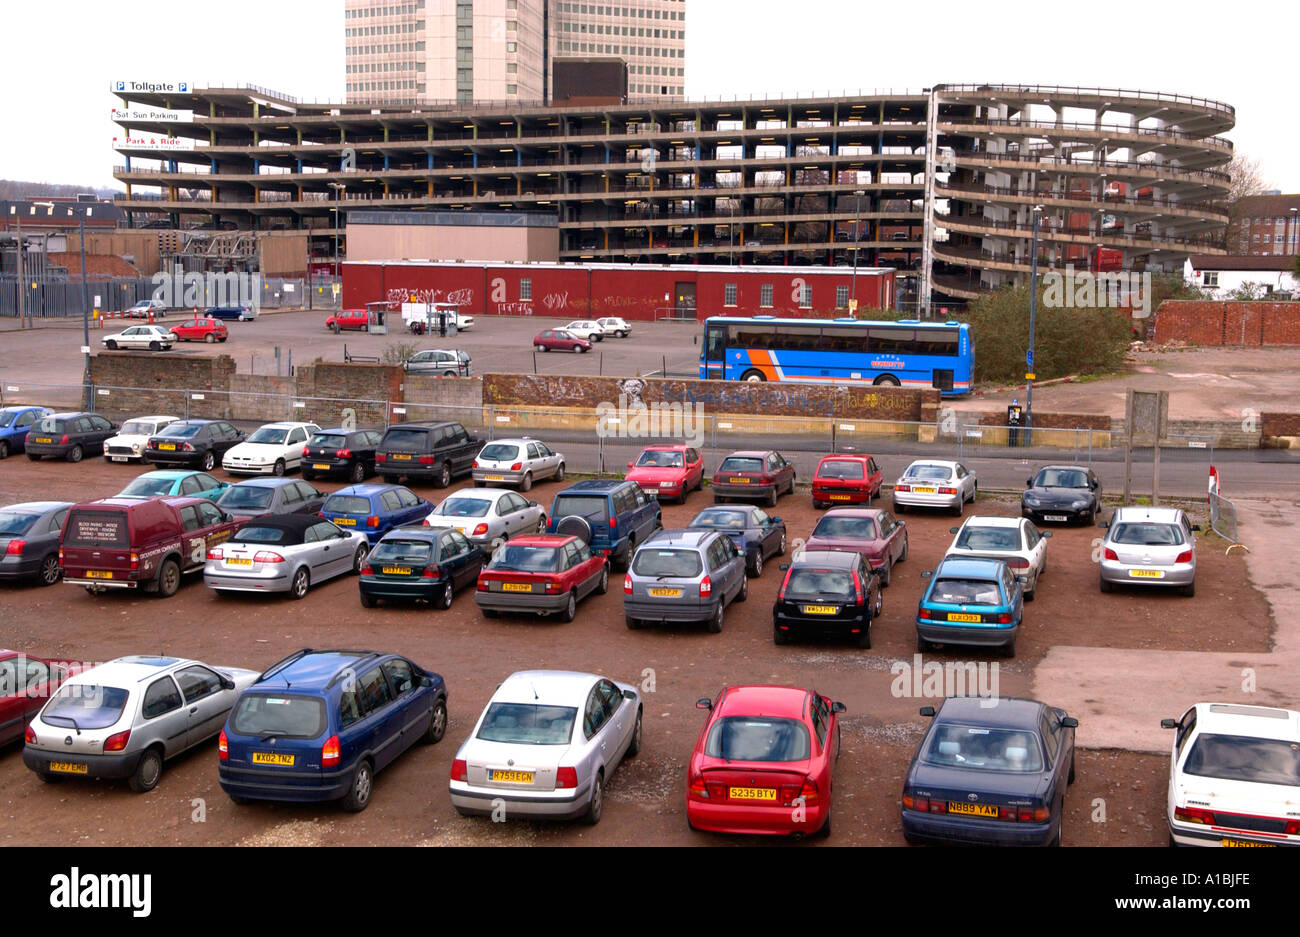 Open air and multistory car park in Bristol city centre England UK - Stock Image